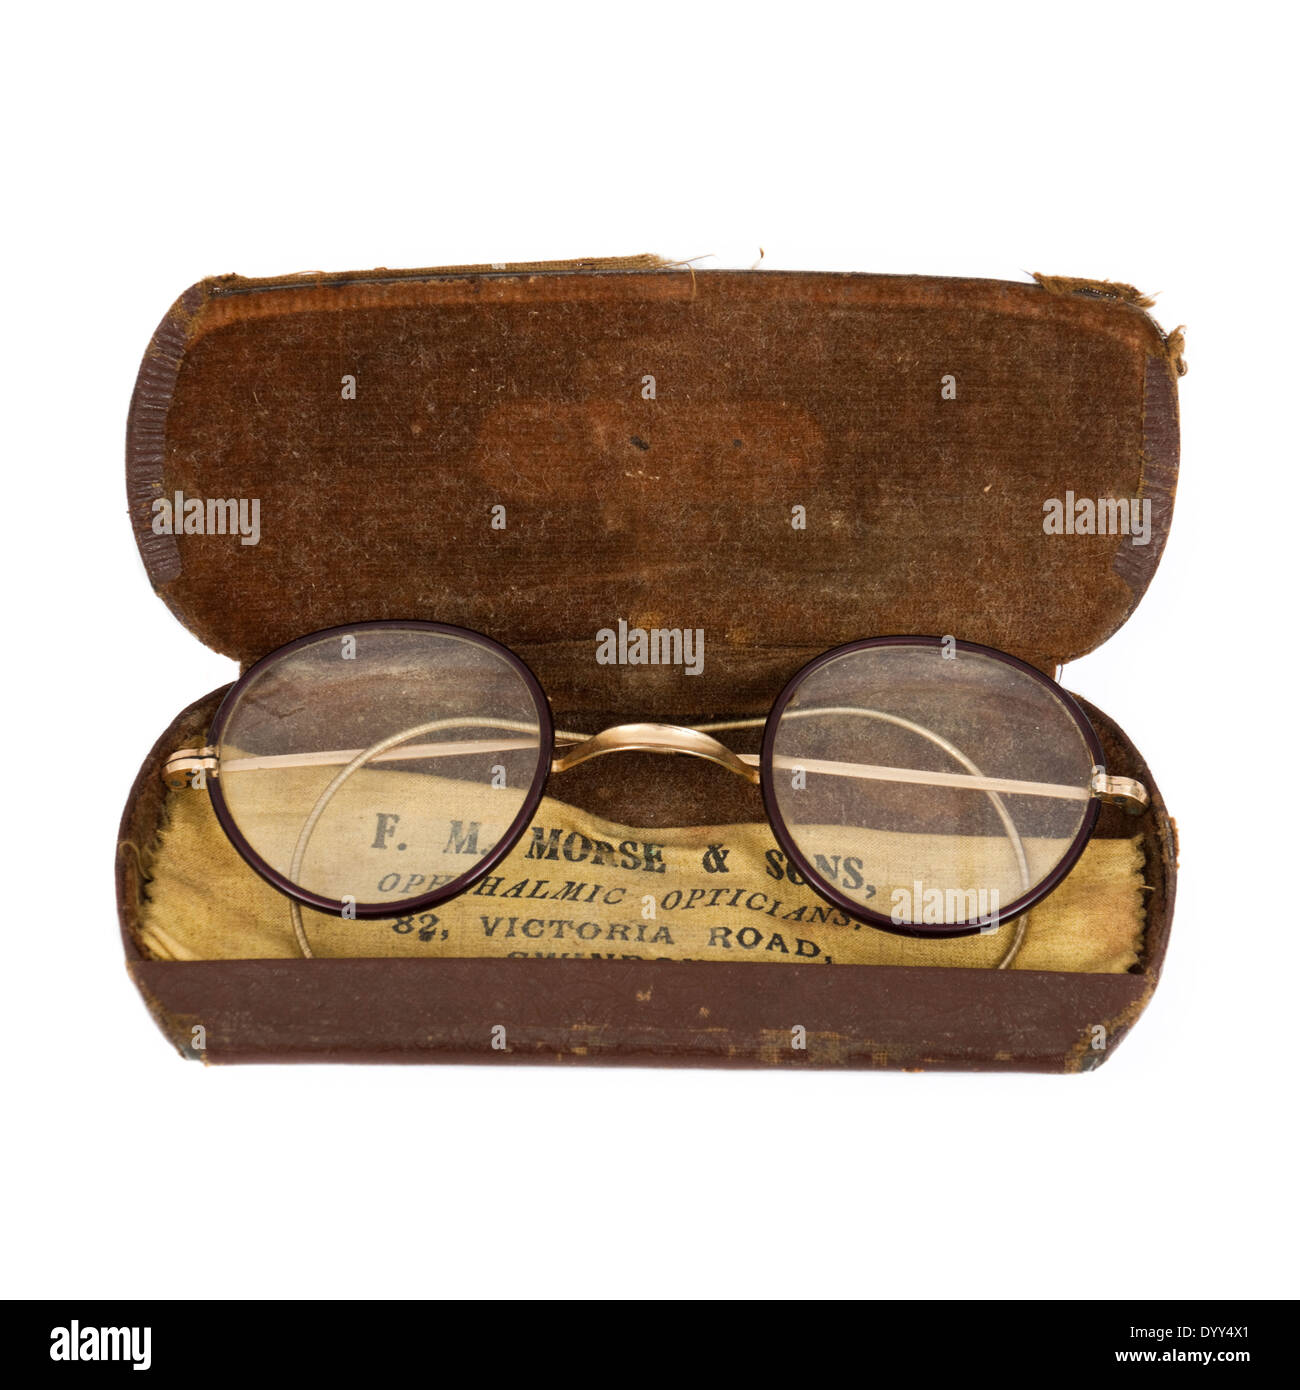 Antique spectacles in original case, supplied by F.M. Morse & Sons, 82 Victoria Road, Swindon, Wiltshire, UK - Stock Image